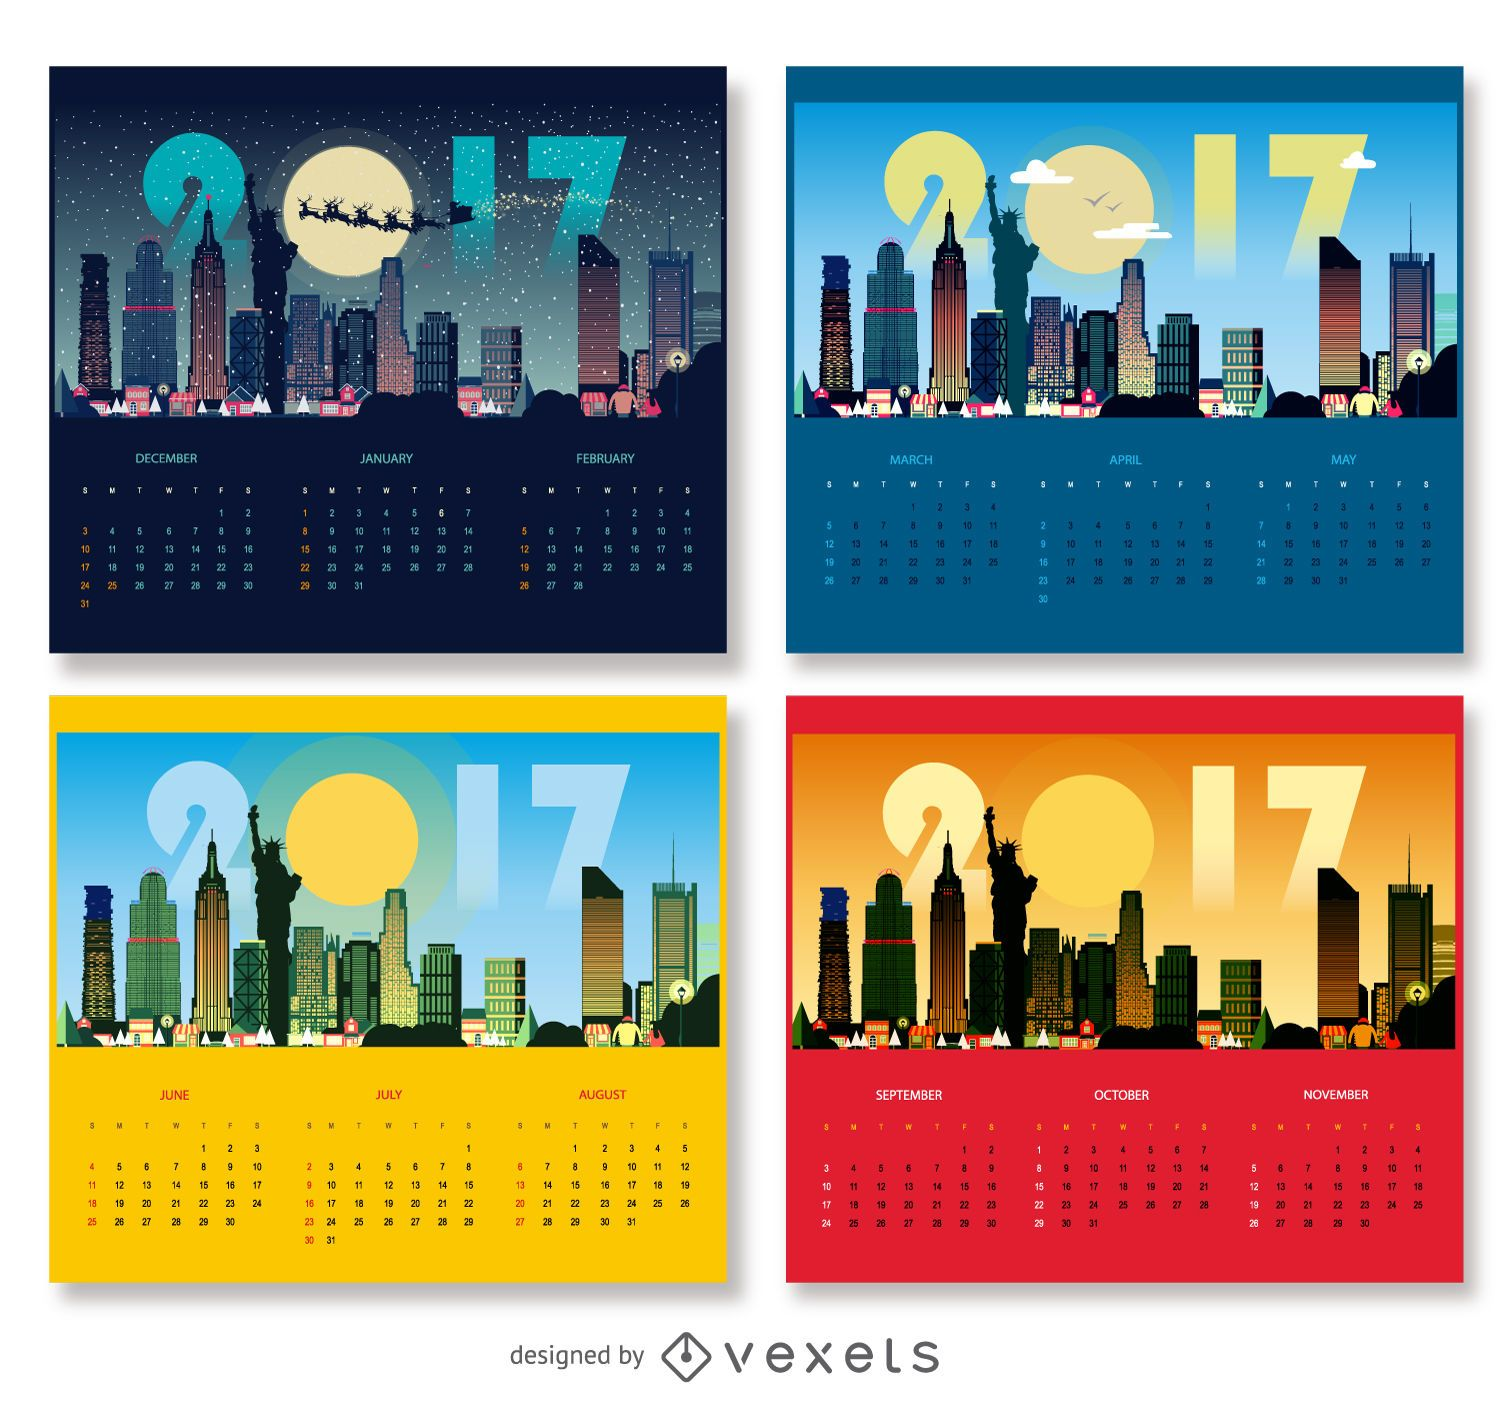 Stunning 2017 free vector calendars design inspiration for Architecture 2017